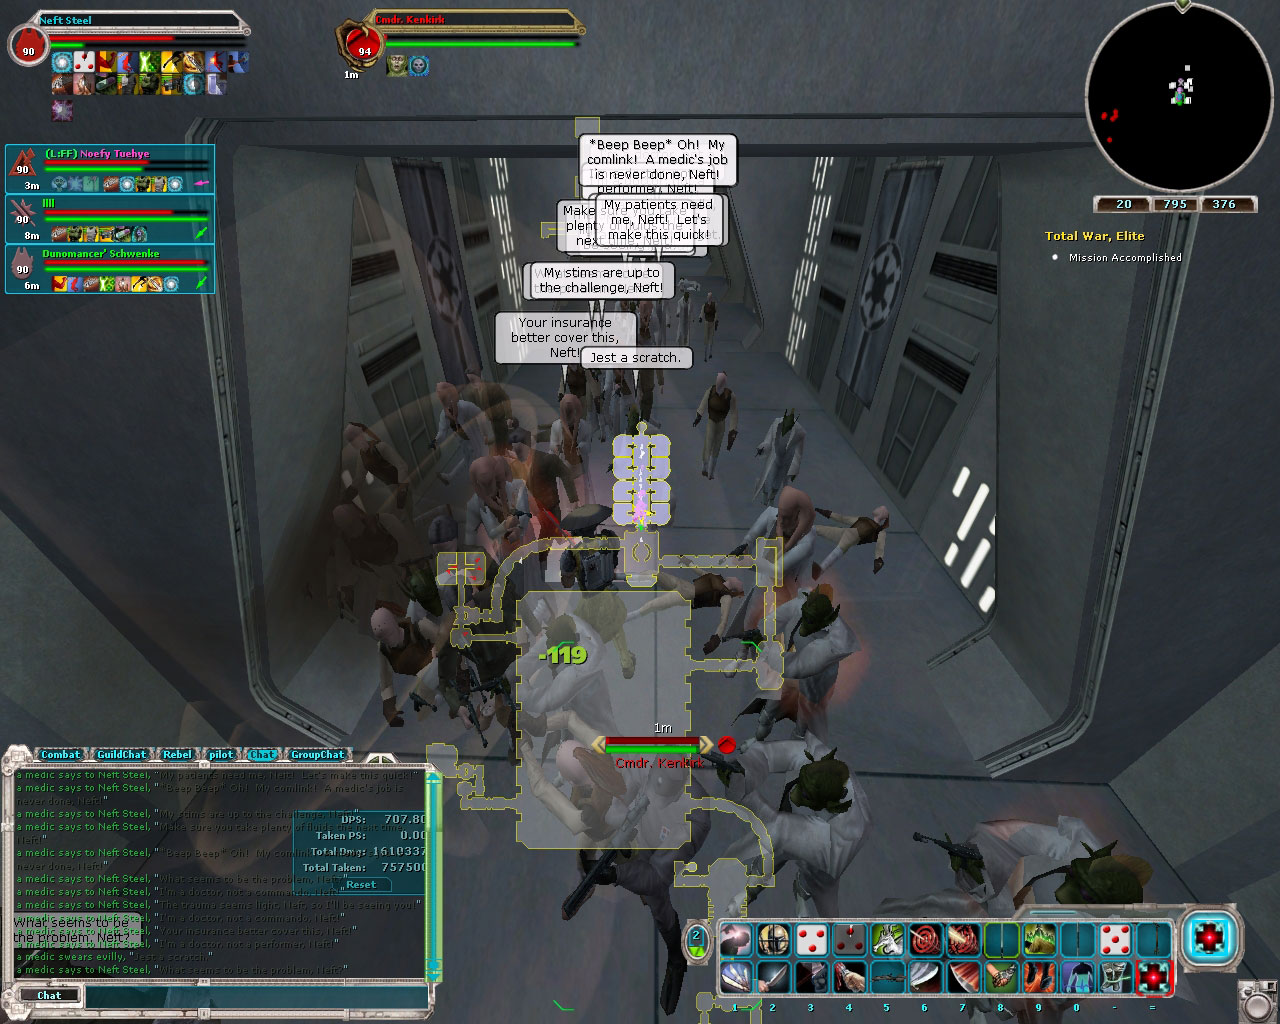 Doing an ISD run with our medic friends.